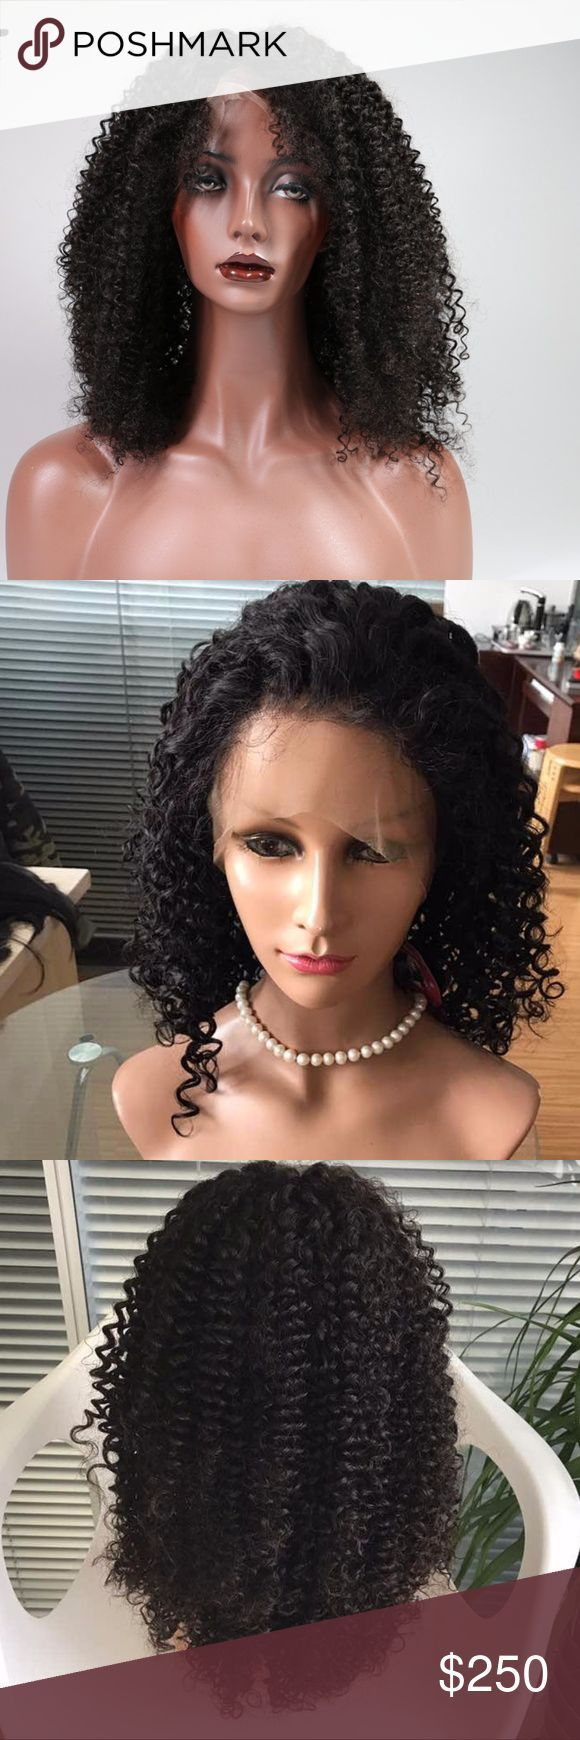 Water wave 22 '' full lace 150% density  hair wig Water wave 22 '' full lace 150% density human hair wig Natural color wig .   Can be dyed permed or restyled . Accessories Hair Accessories